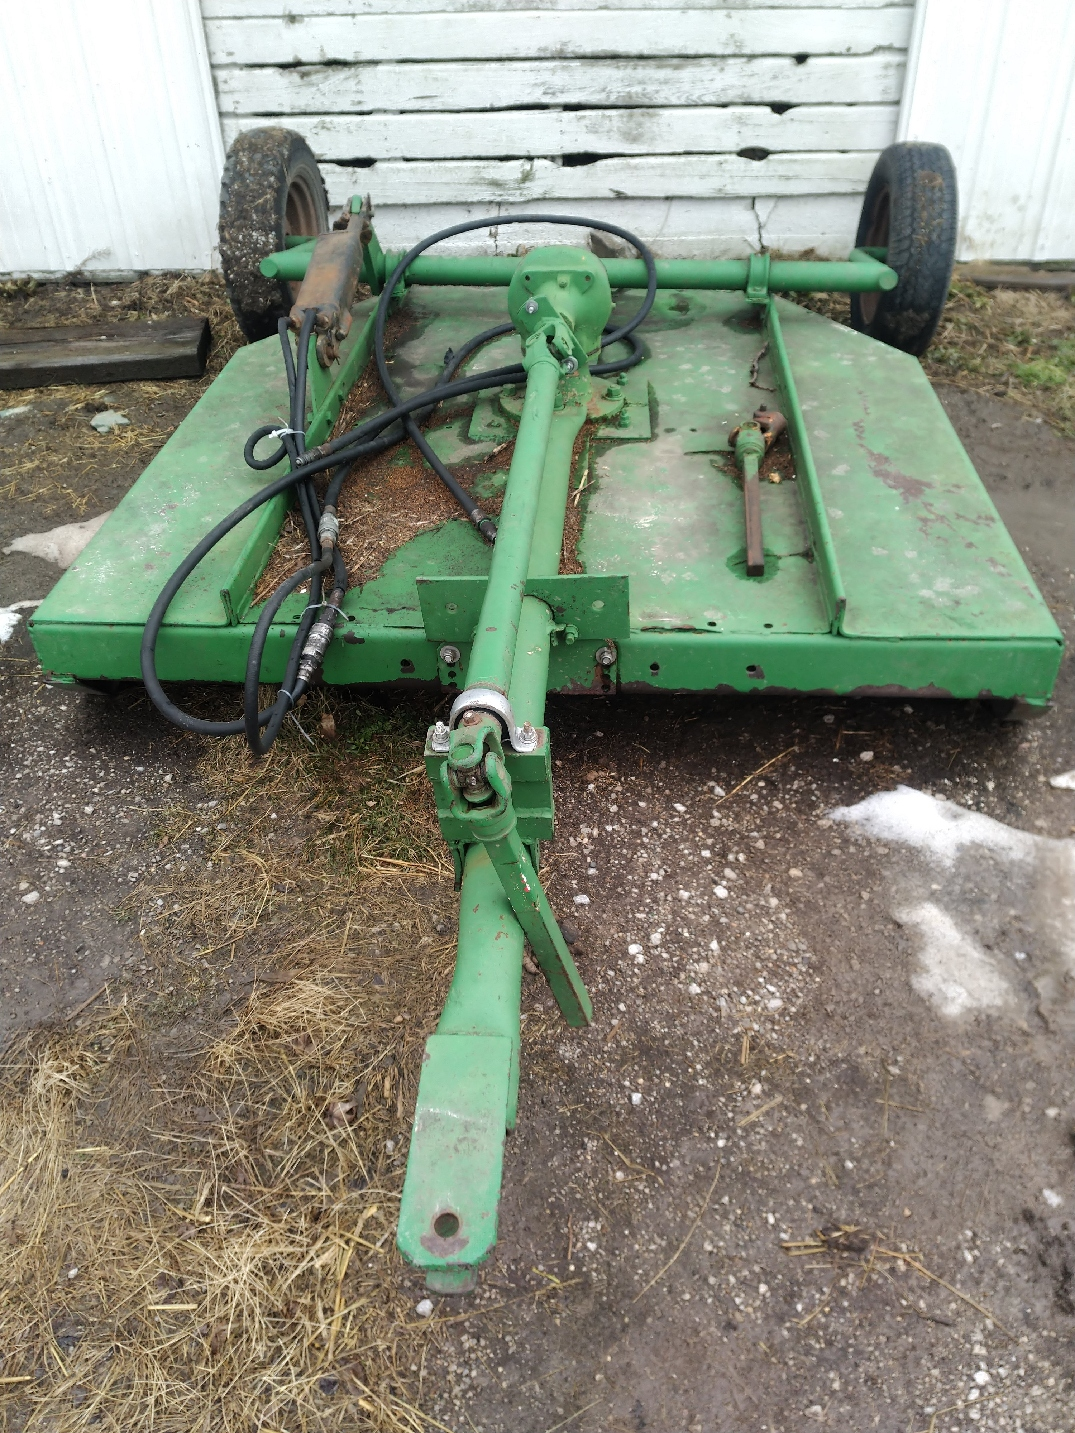 Pull Type PTO Mower, Hydraulic Lift, 5.5 Ft. - Image 2 of 2